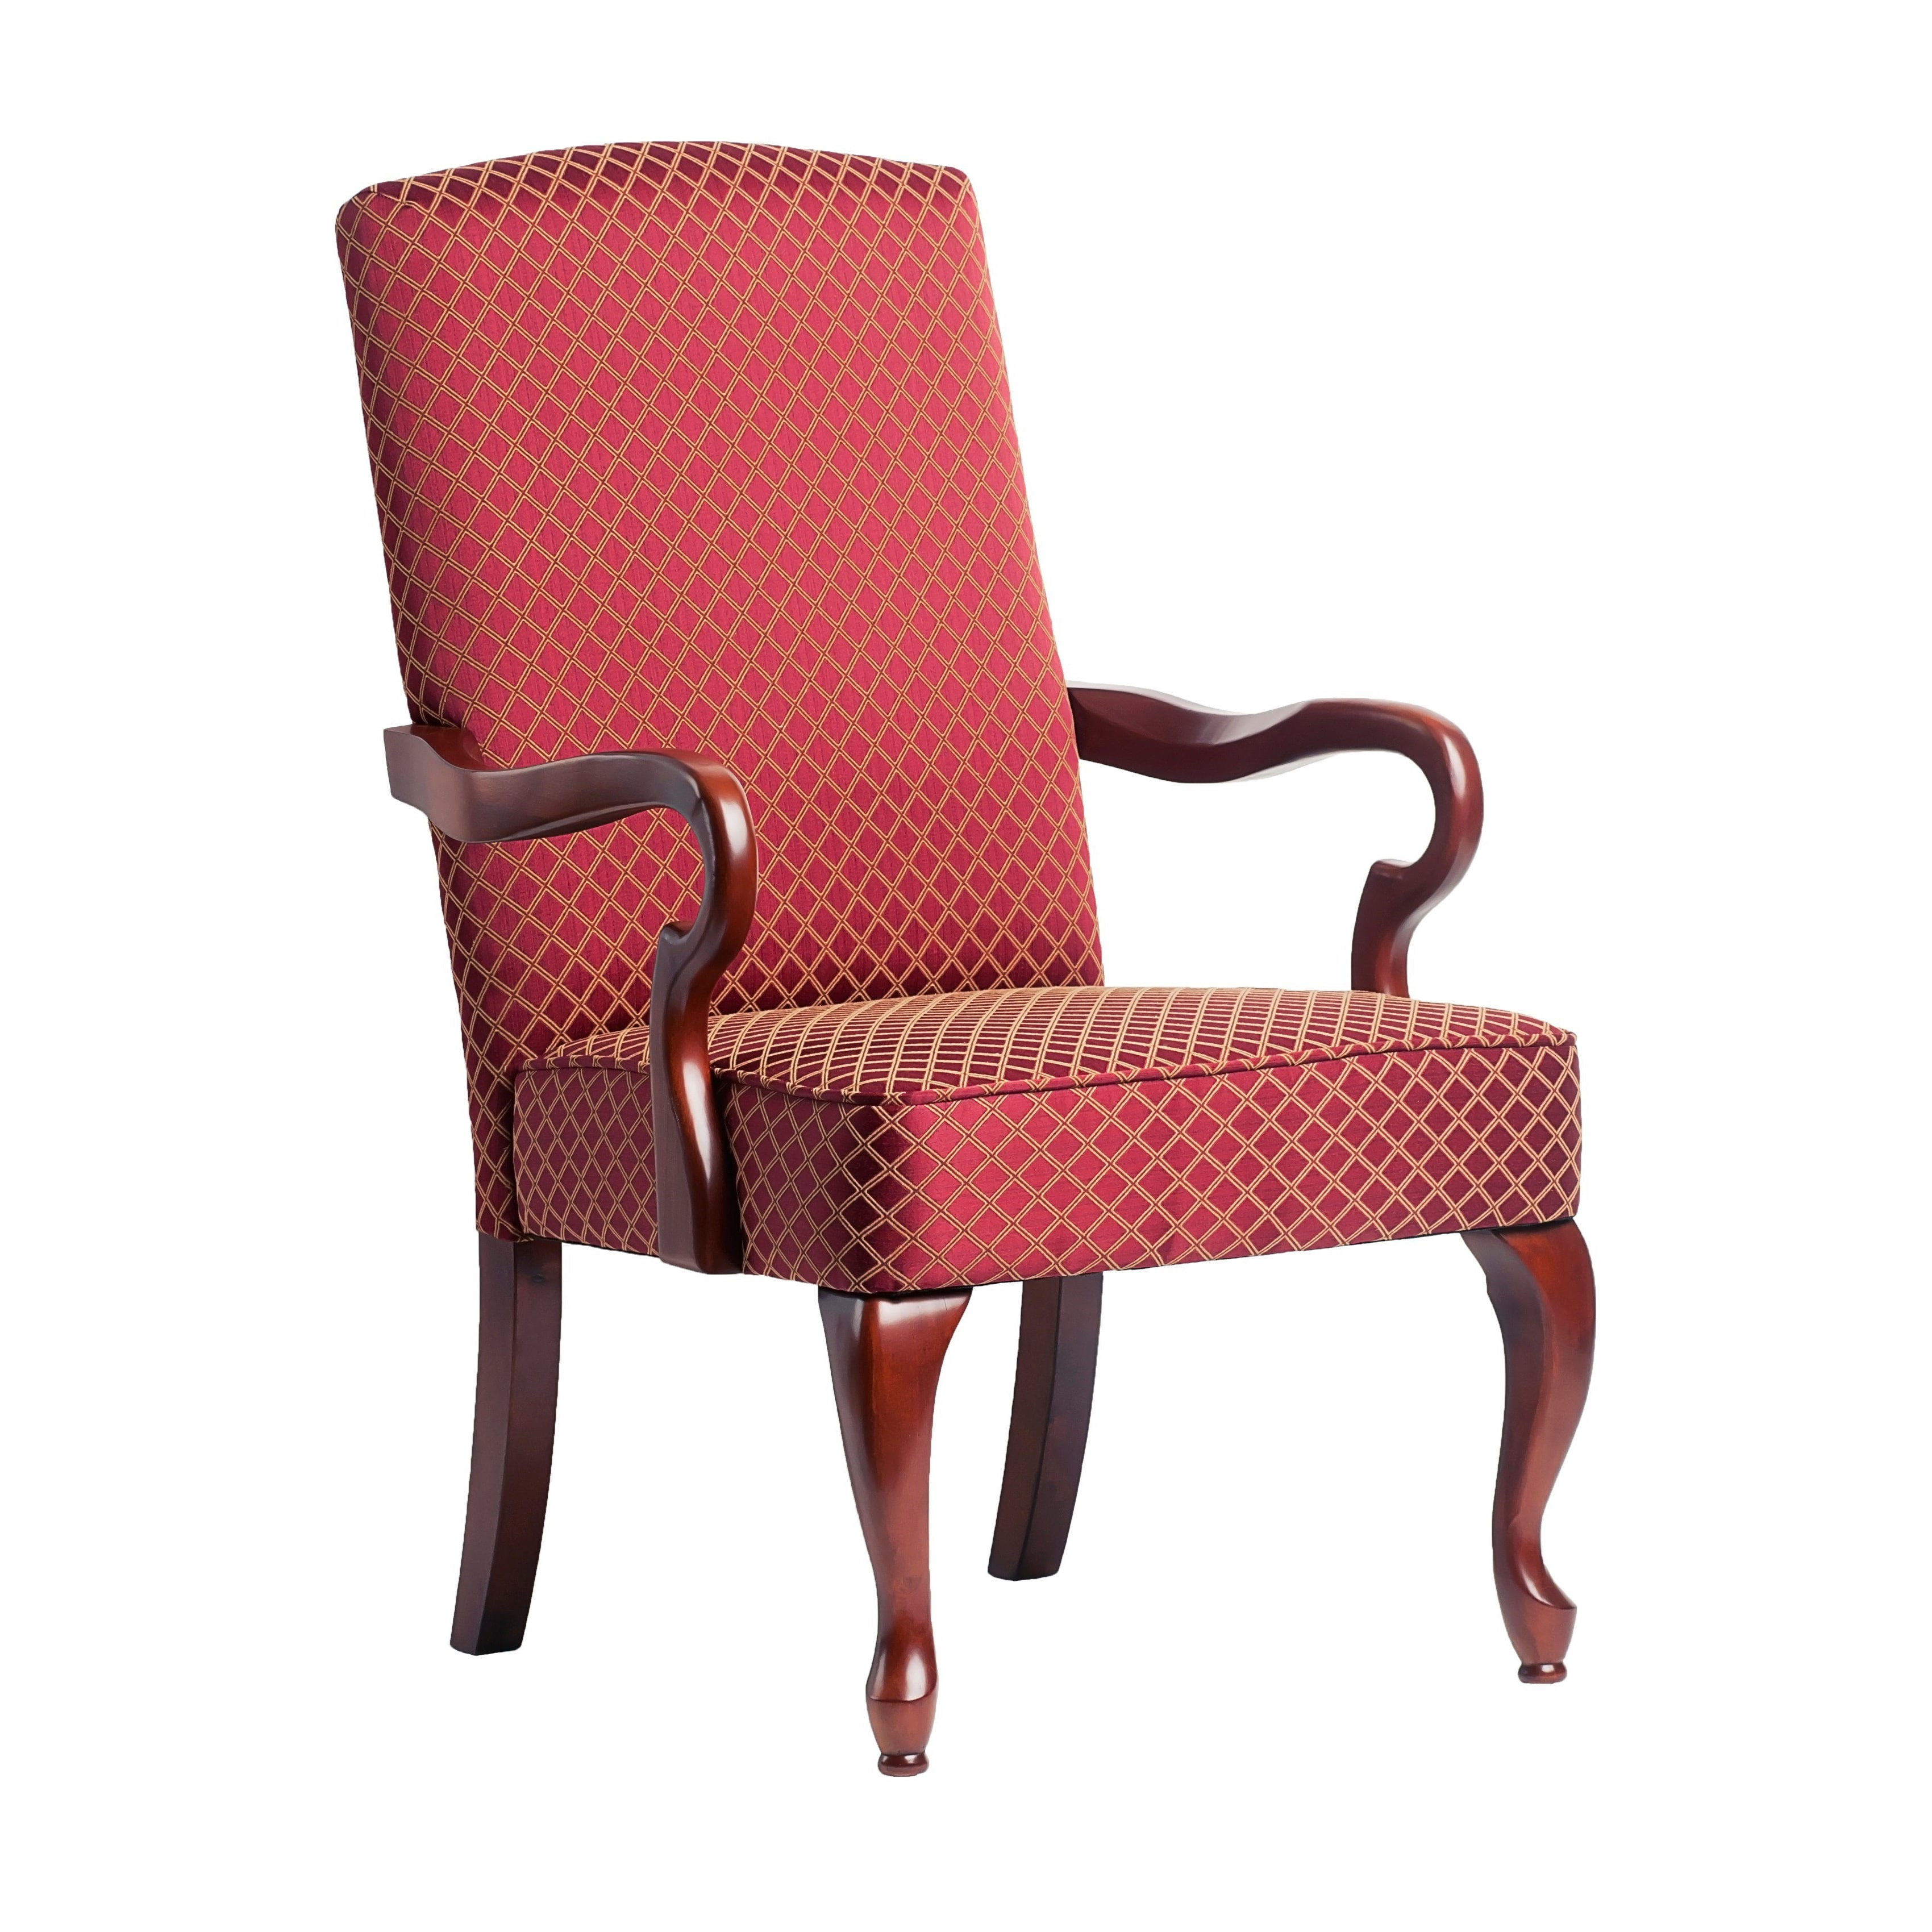 Greyson Living  Dayton Cherry Finish Gooseneck Accent Chair OS-6700